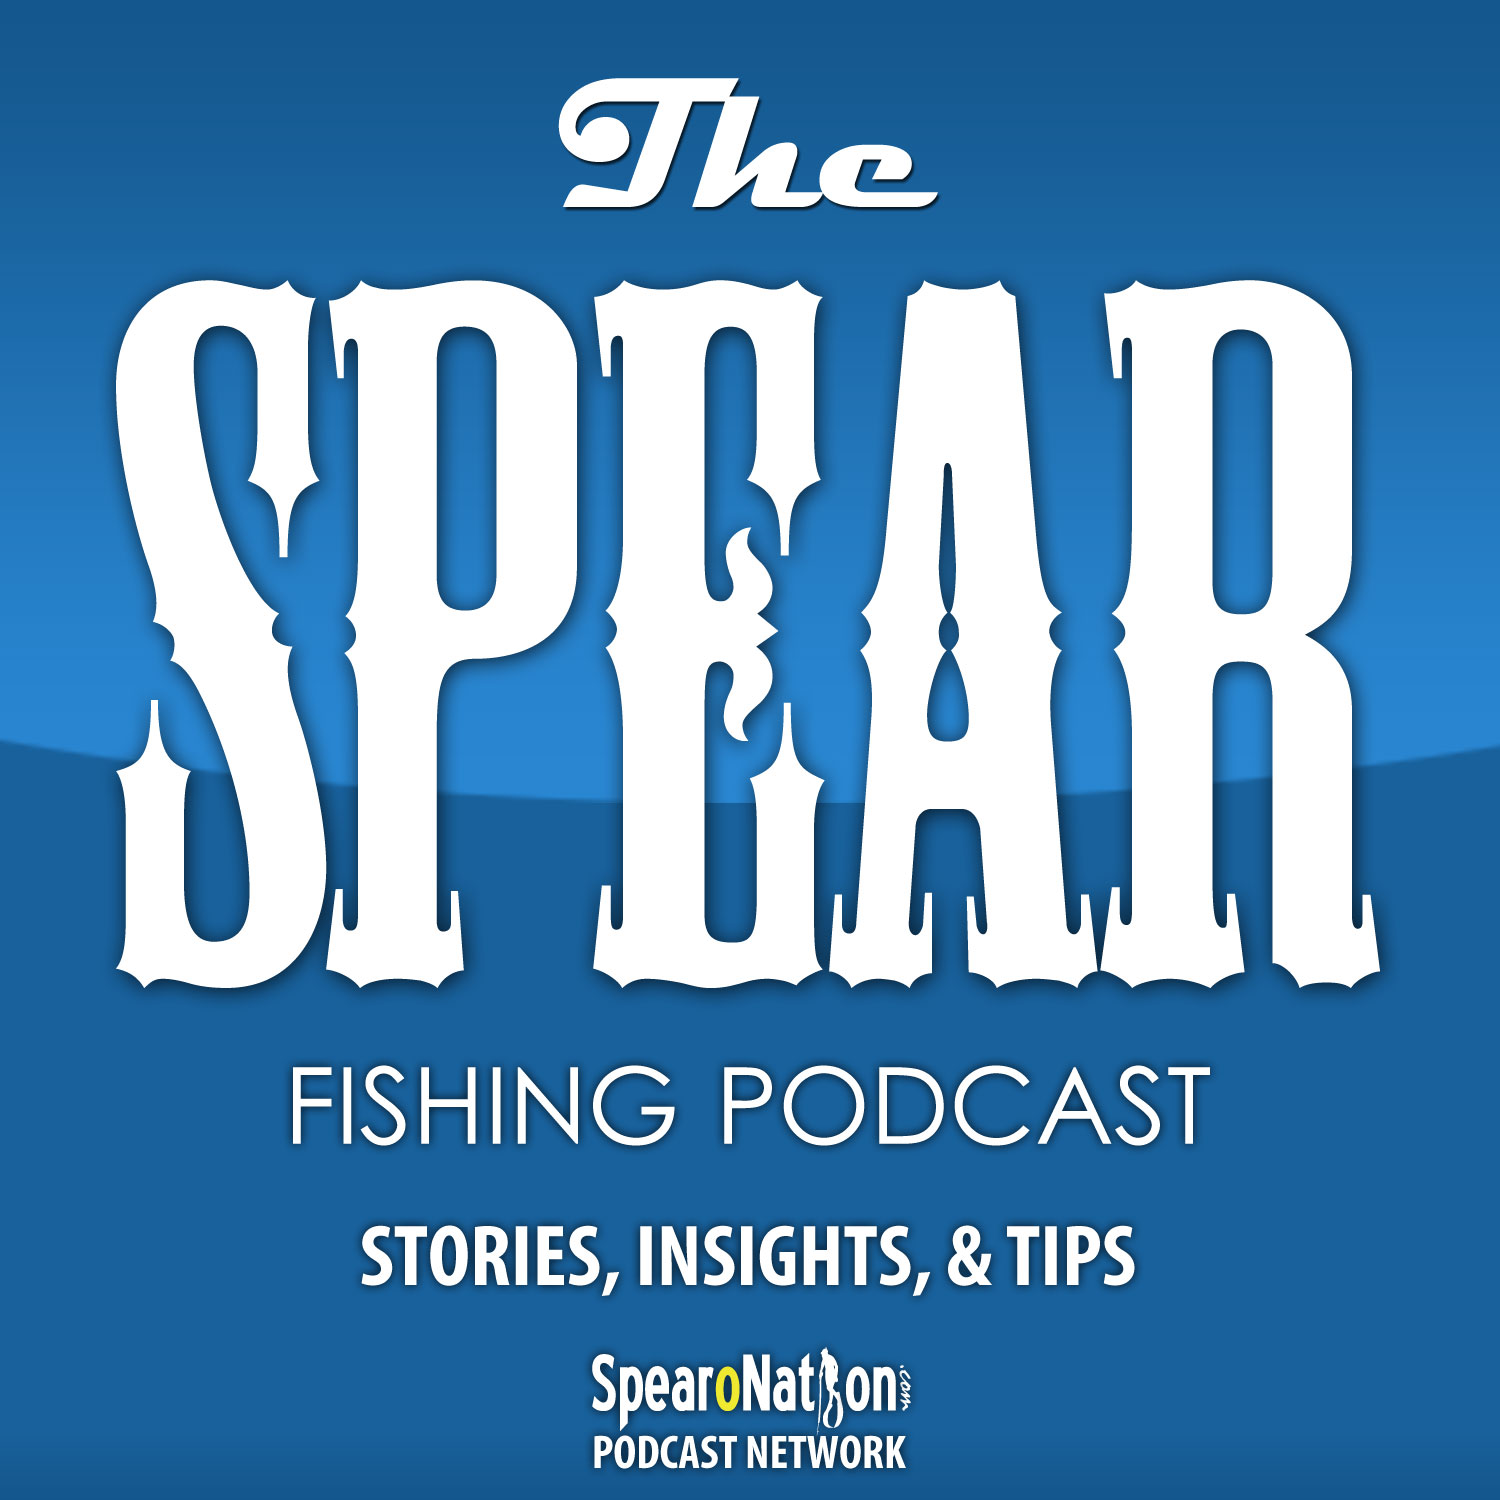 The Spear: Spearfishing | Freediving | Apnea | Fishing